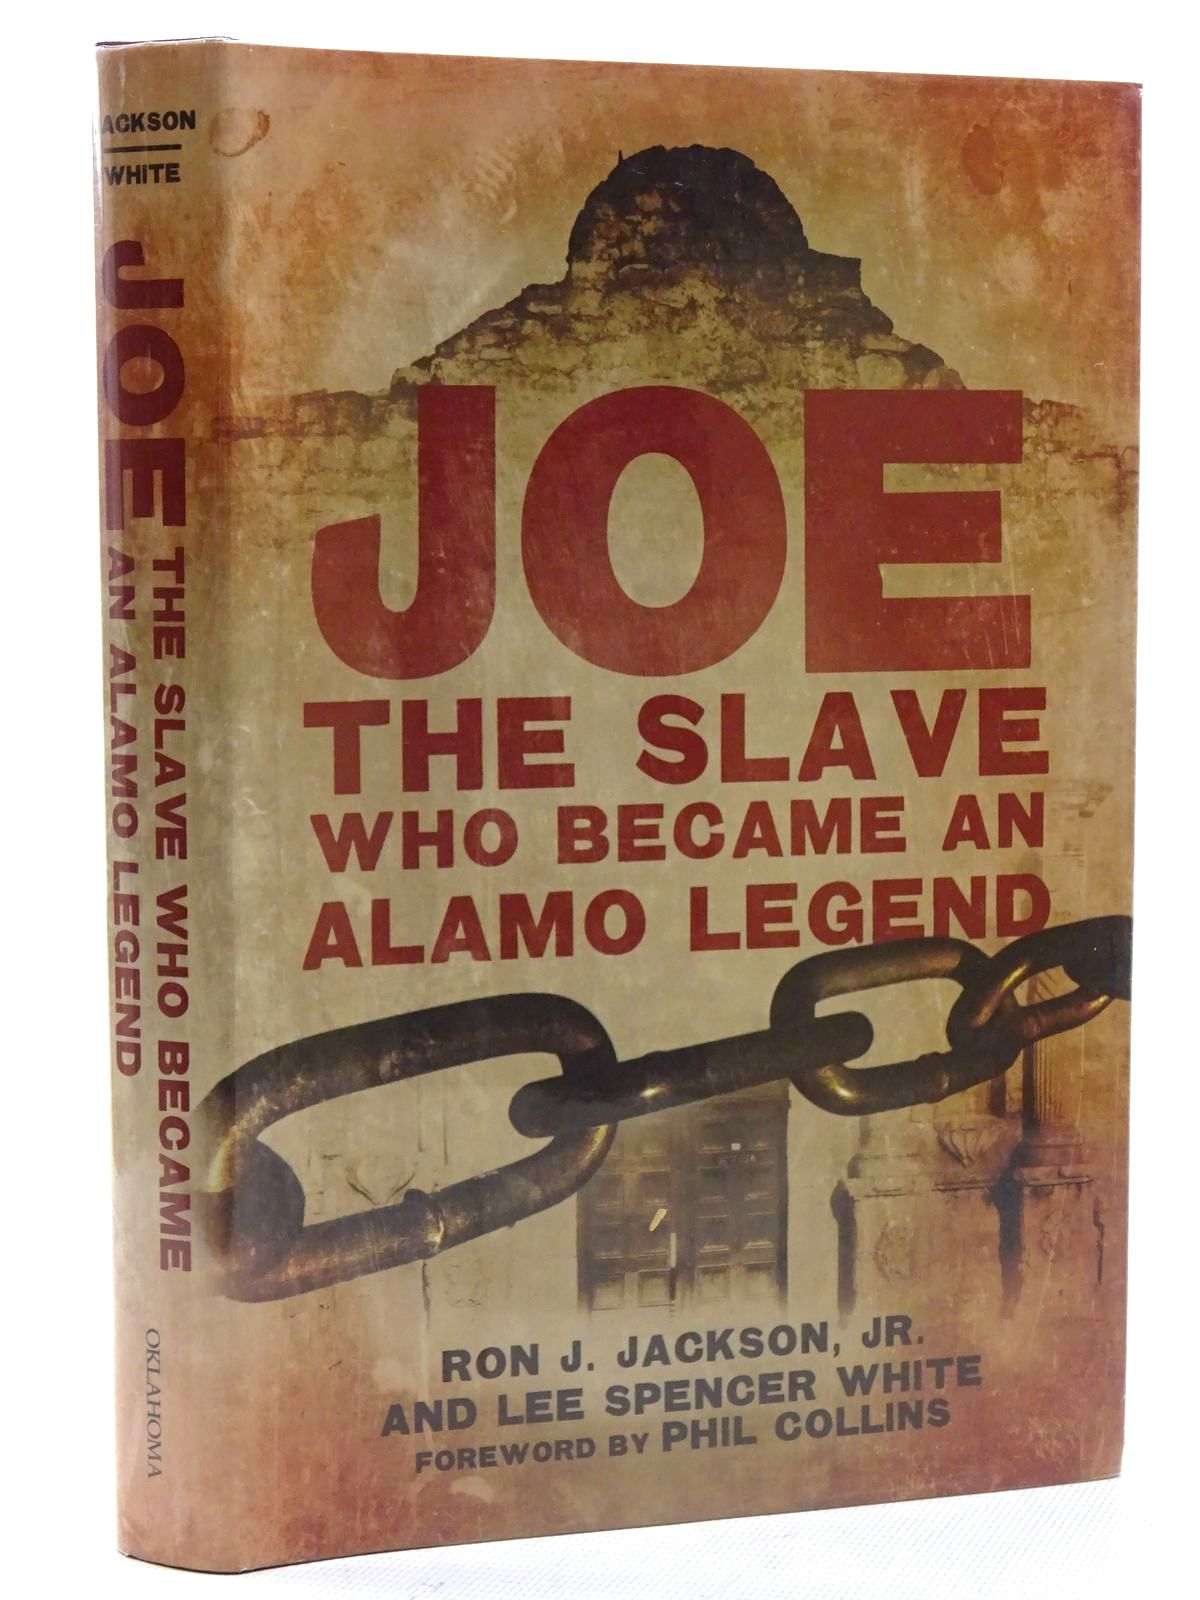 Photo of JOE, THE SLAVE WHO BECAME AN ALAMO LEGEND written by Jackson, Ron J. White, Lee Spencer published by University of Oklahoma Press (STOCK CODE: 1816272)  for sale by Stella & Rose's Books